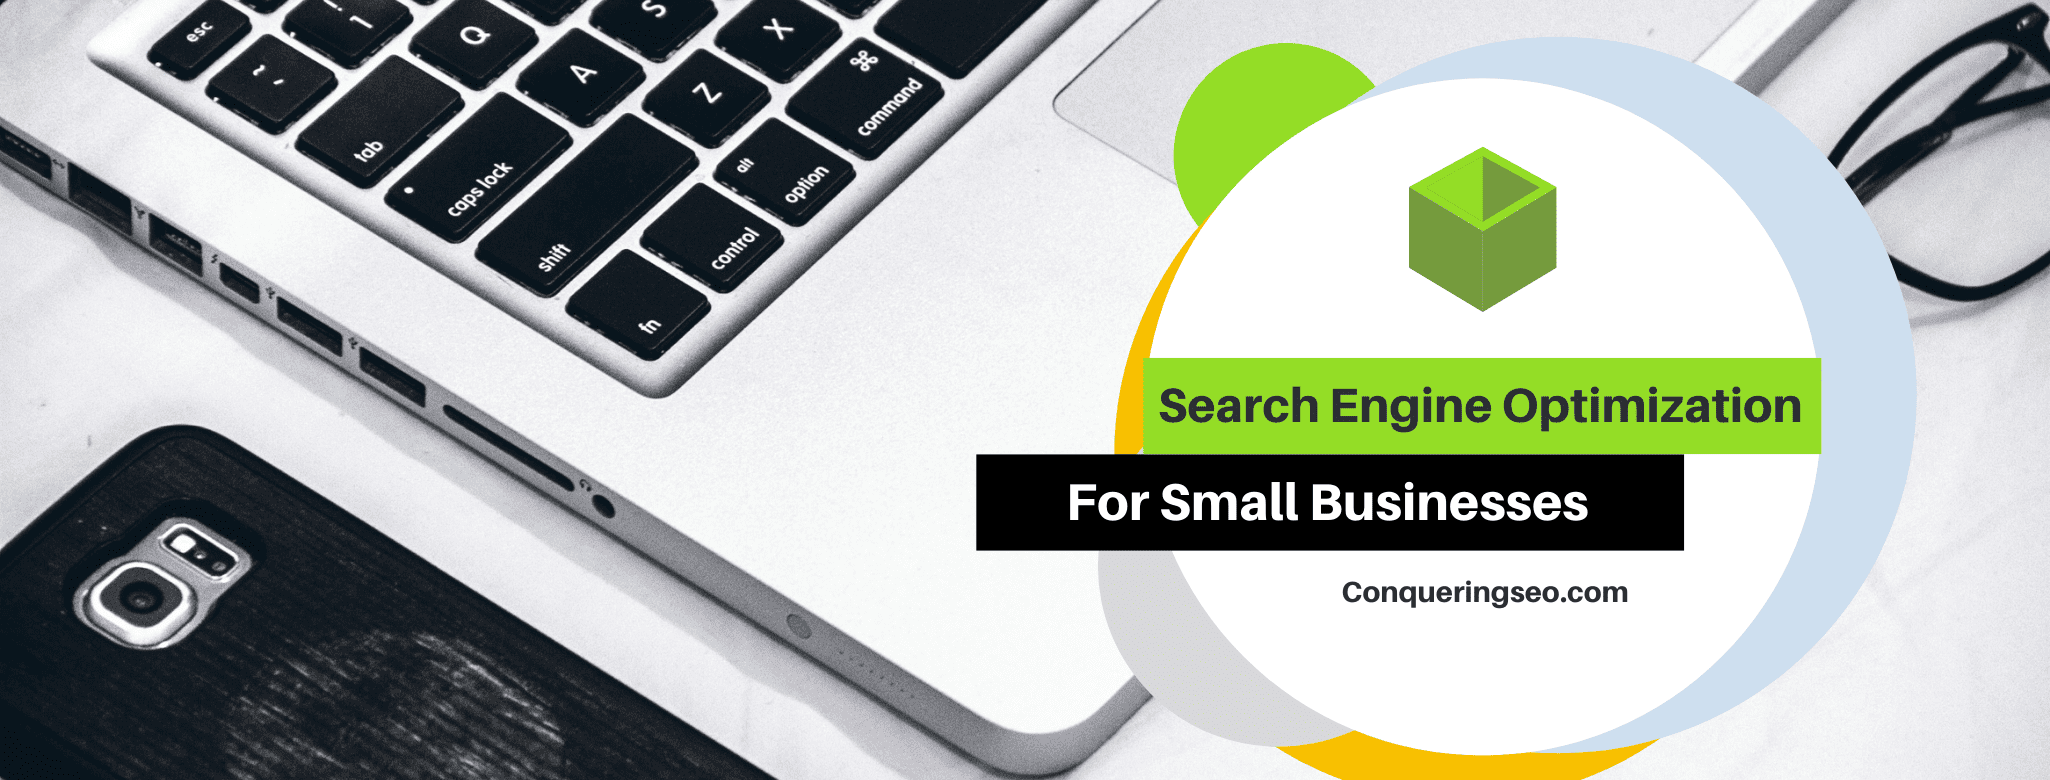 picture of Search Engine Optimization for small businesses